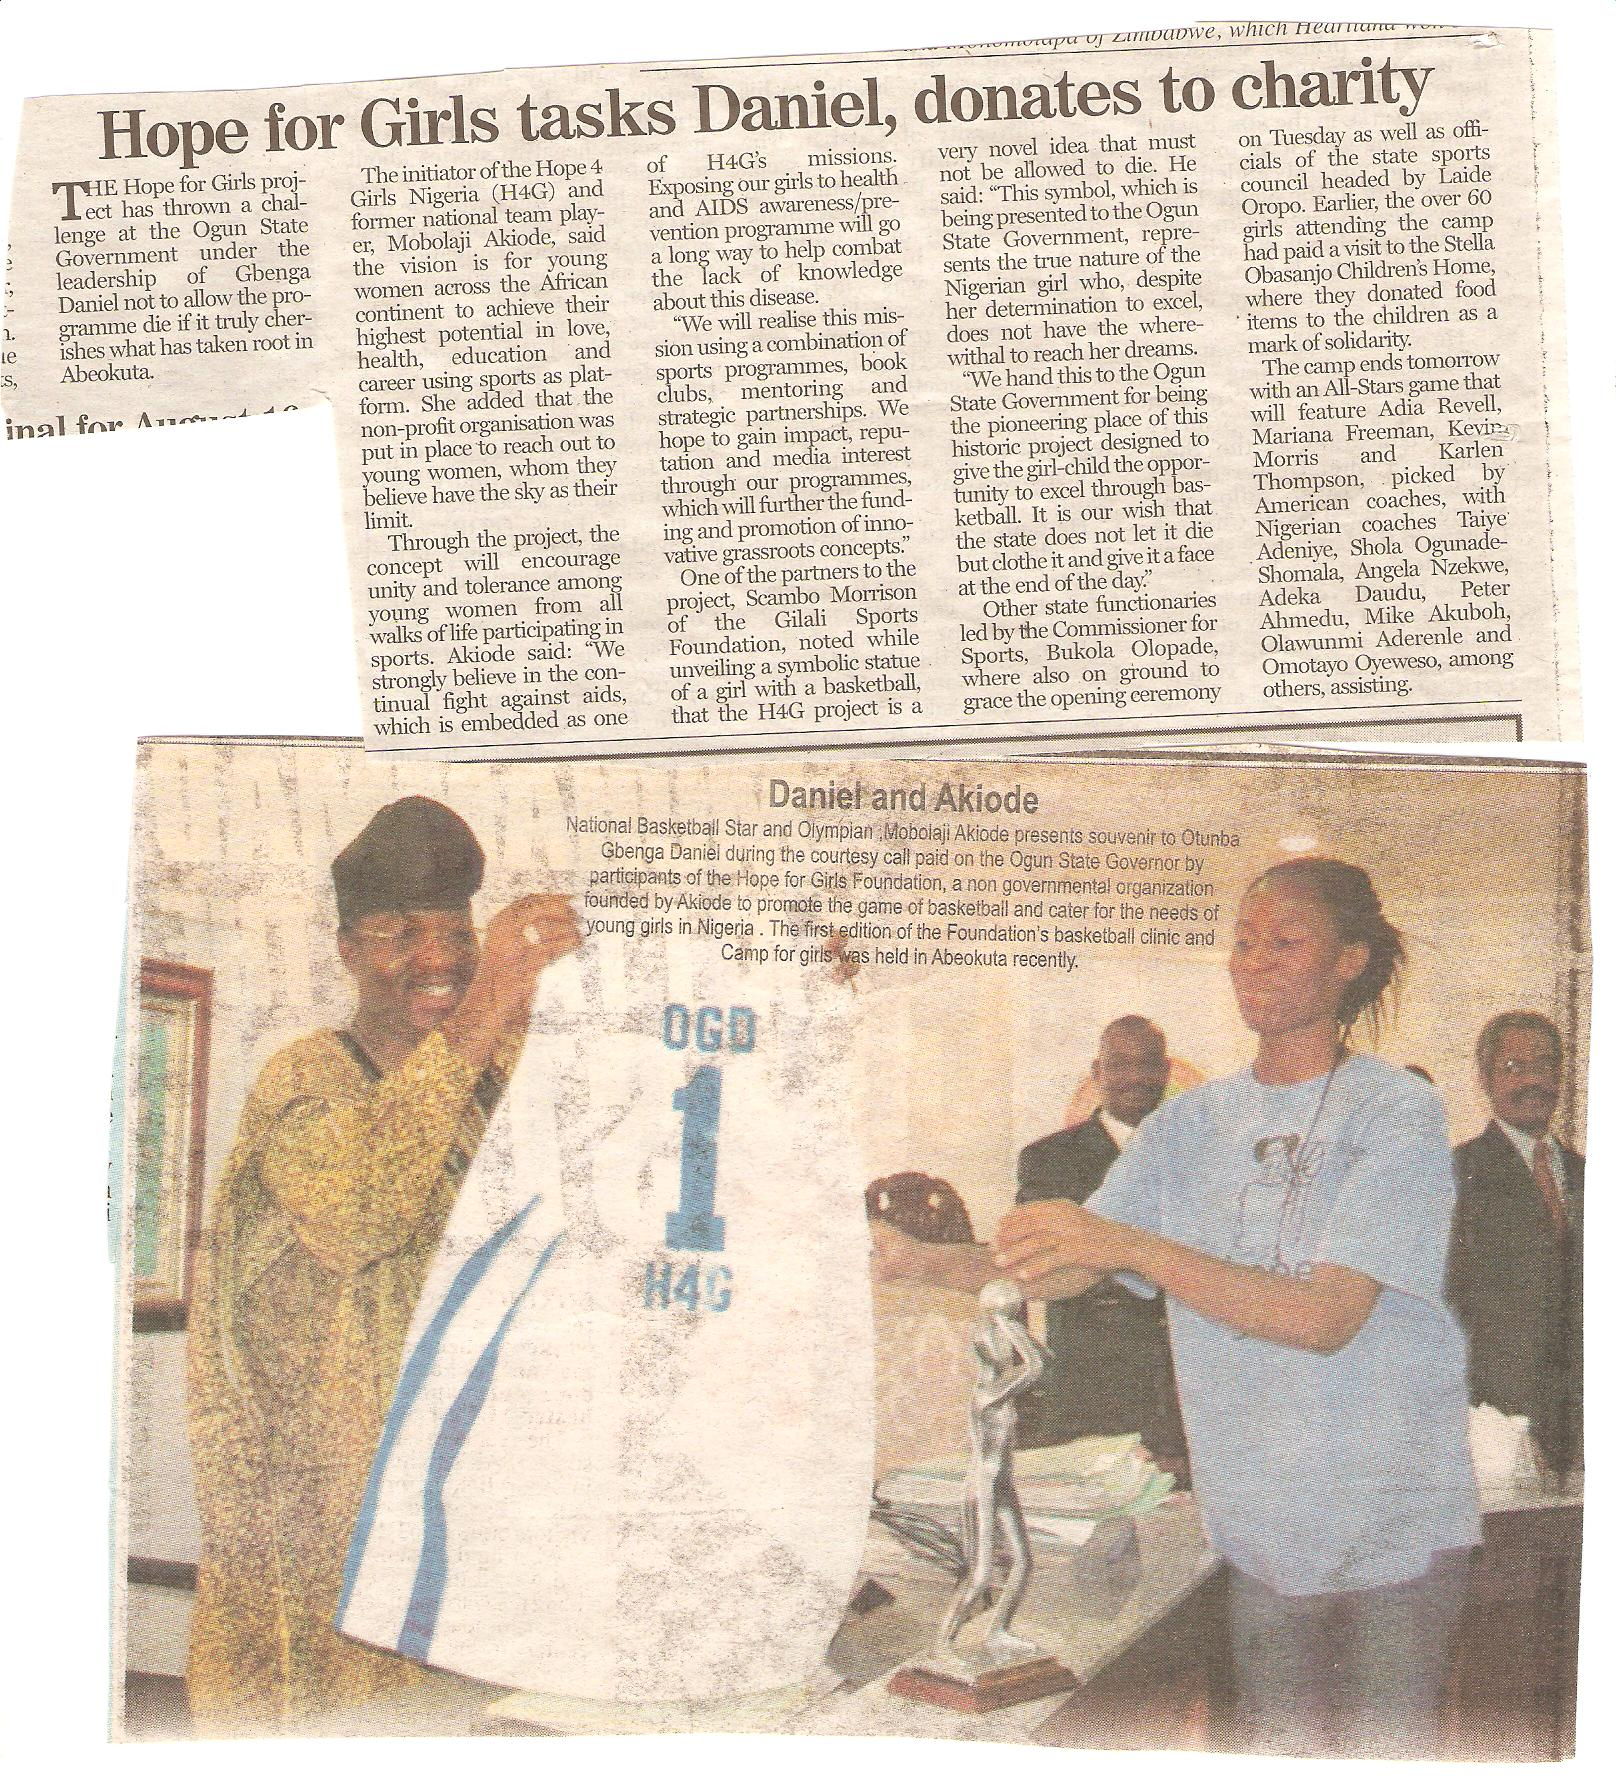 H4G Ogun Article